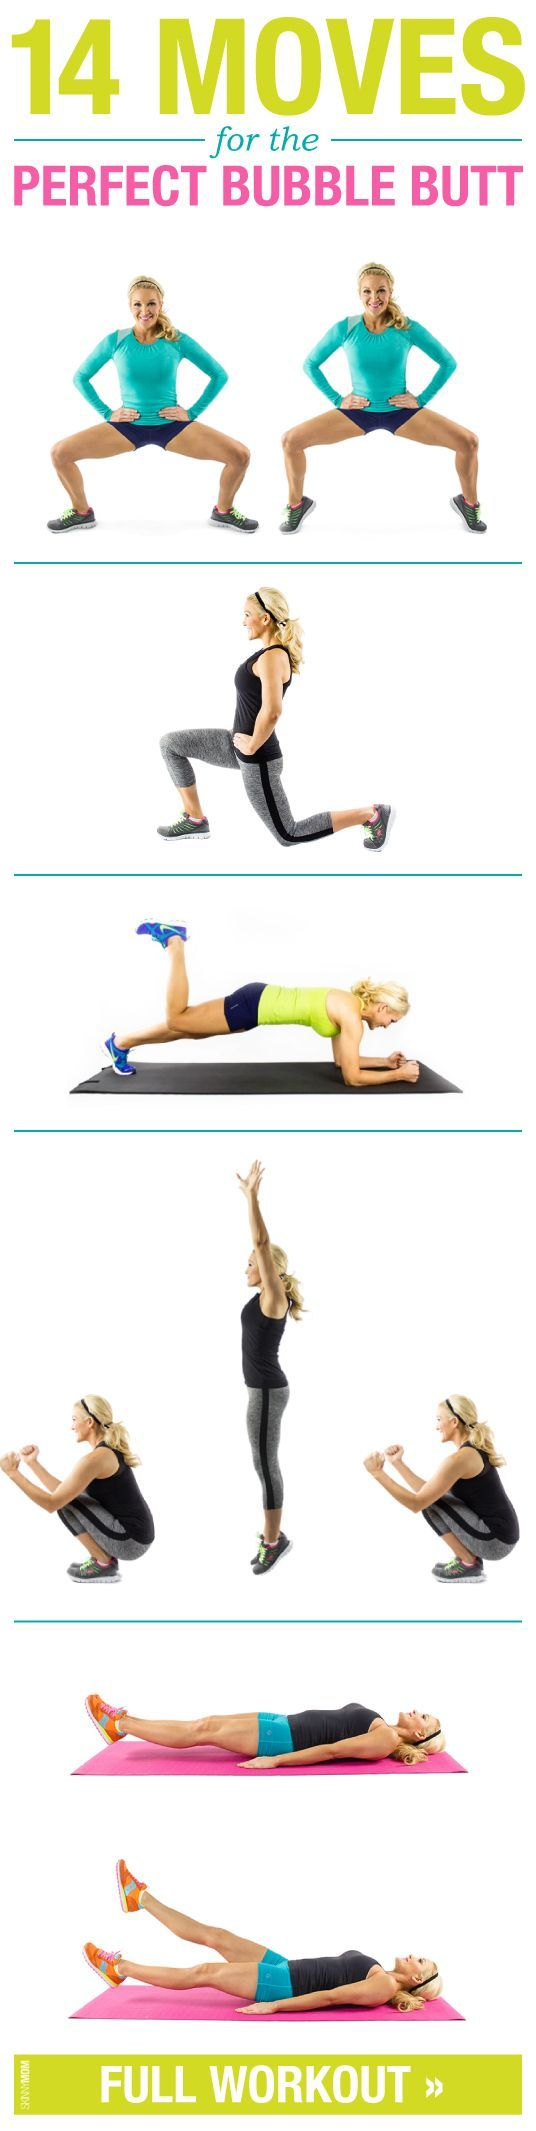 Rock through these moves for a perfect booty.